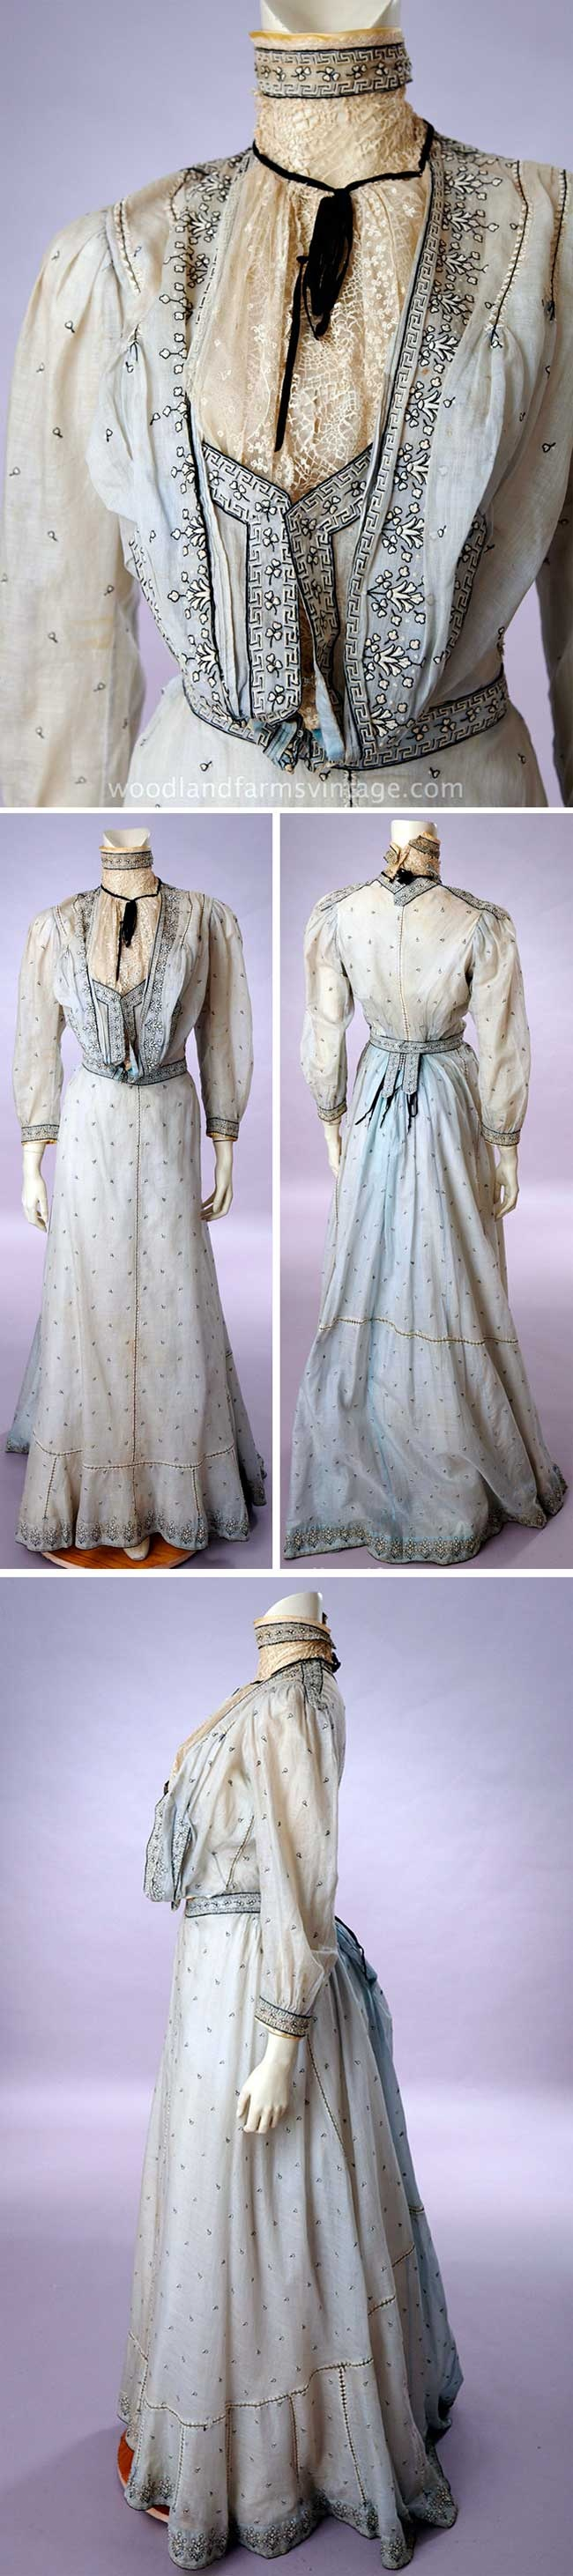 Pale blue 2-piece pigeon waist dress, no date. Boned cotton camisole closing w/hooks at center front. Lace collar & jabot hook onto camisole. Blue cotton lawn outer waist hooks below jabot for vestee effect. Narrow black velvet ribbon at collar with bow. Bodice front heavily decorated w/embroidery & clocking. Long, sheer narrow sleeves have narrow cuff w/matching embroidery. White cotton petticoat w/narrow ruffles. Skirt has matching handwork in black & ivory, & clocking. Woodland Farms Vintage